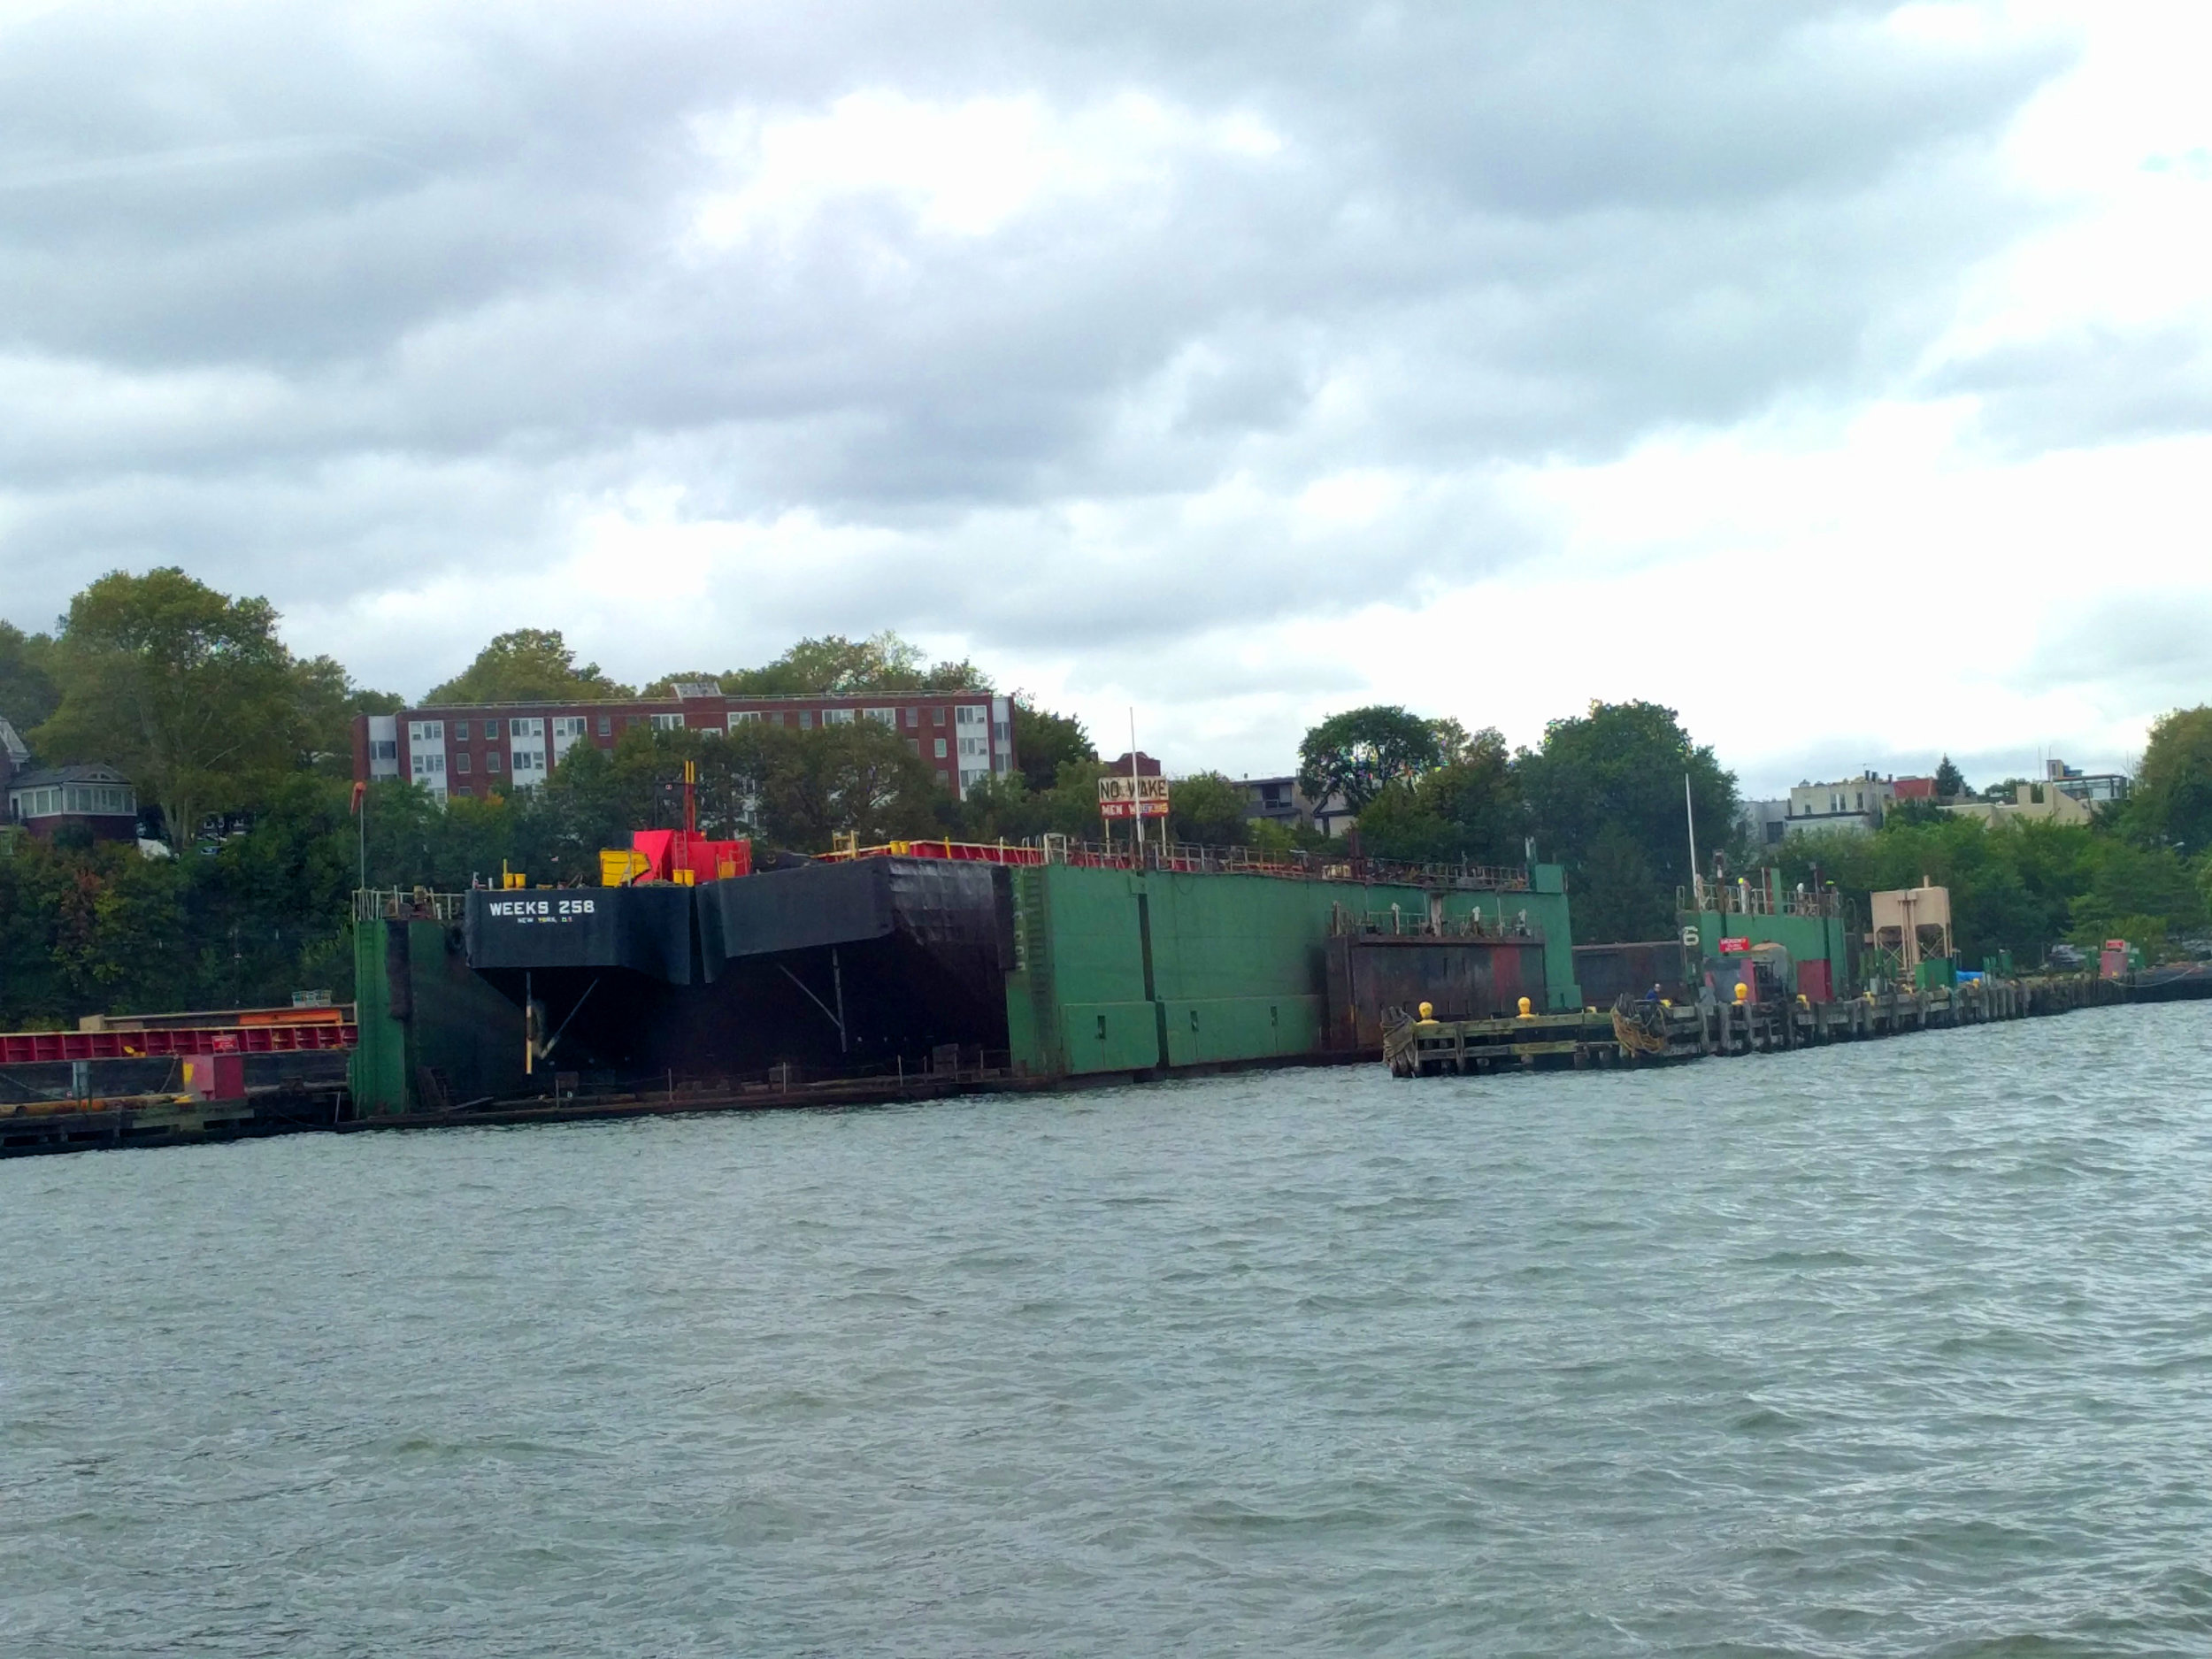 Dry dock to fix barges...and other ships.